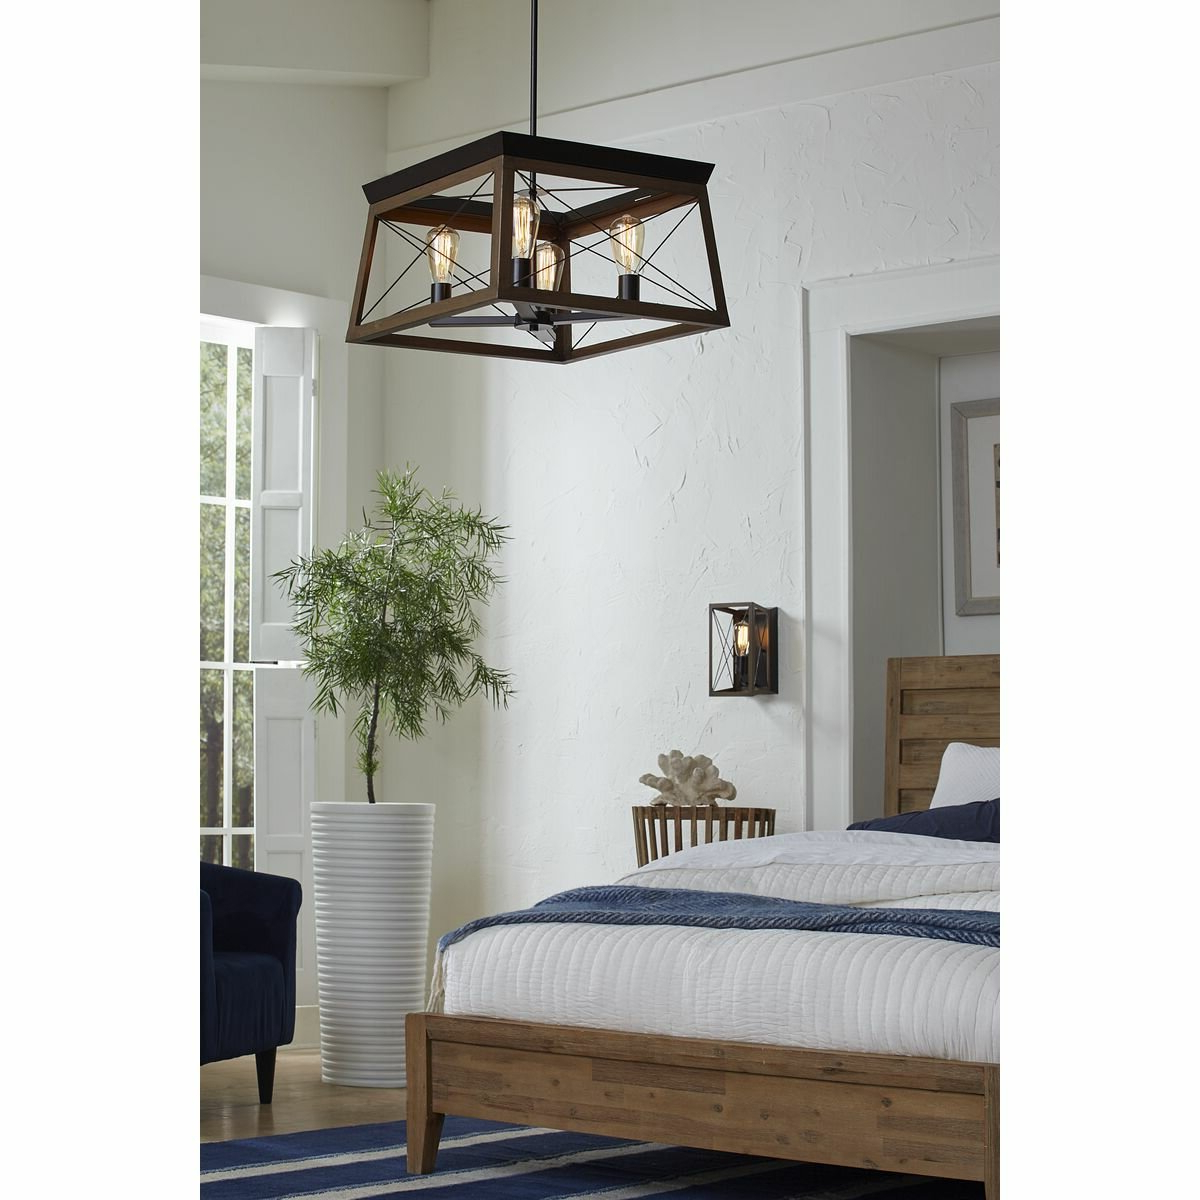 Delon 4-Light Square/rectangle Chandelier pertaining to Fashionable Delon 4-Light Square Chandeliers